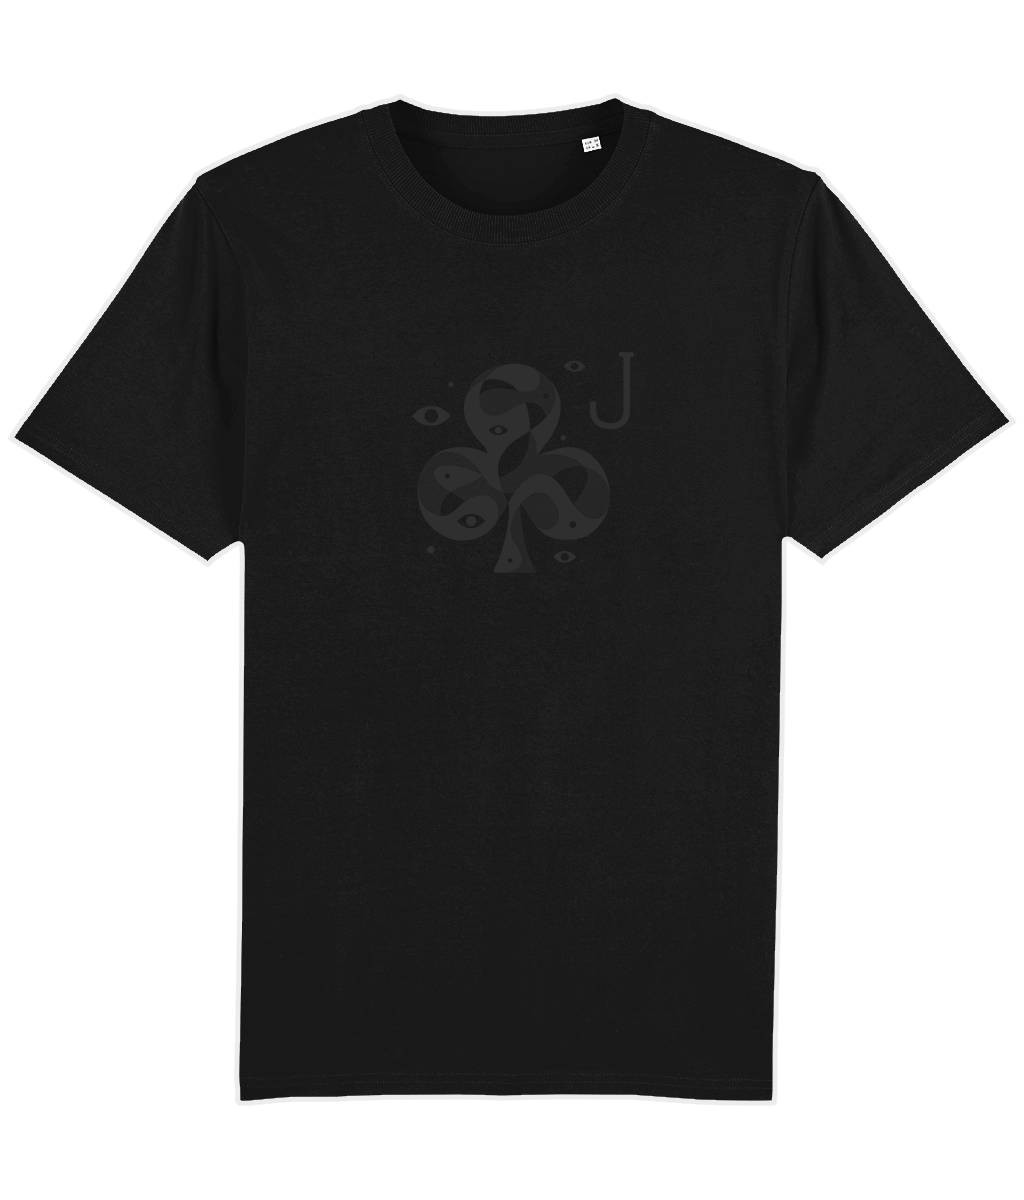 COJ-t-shirts-shop-dark-black-mens-front